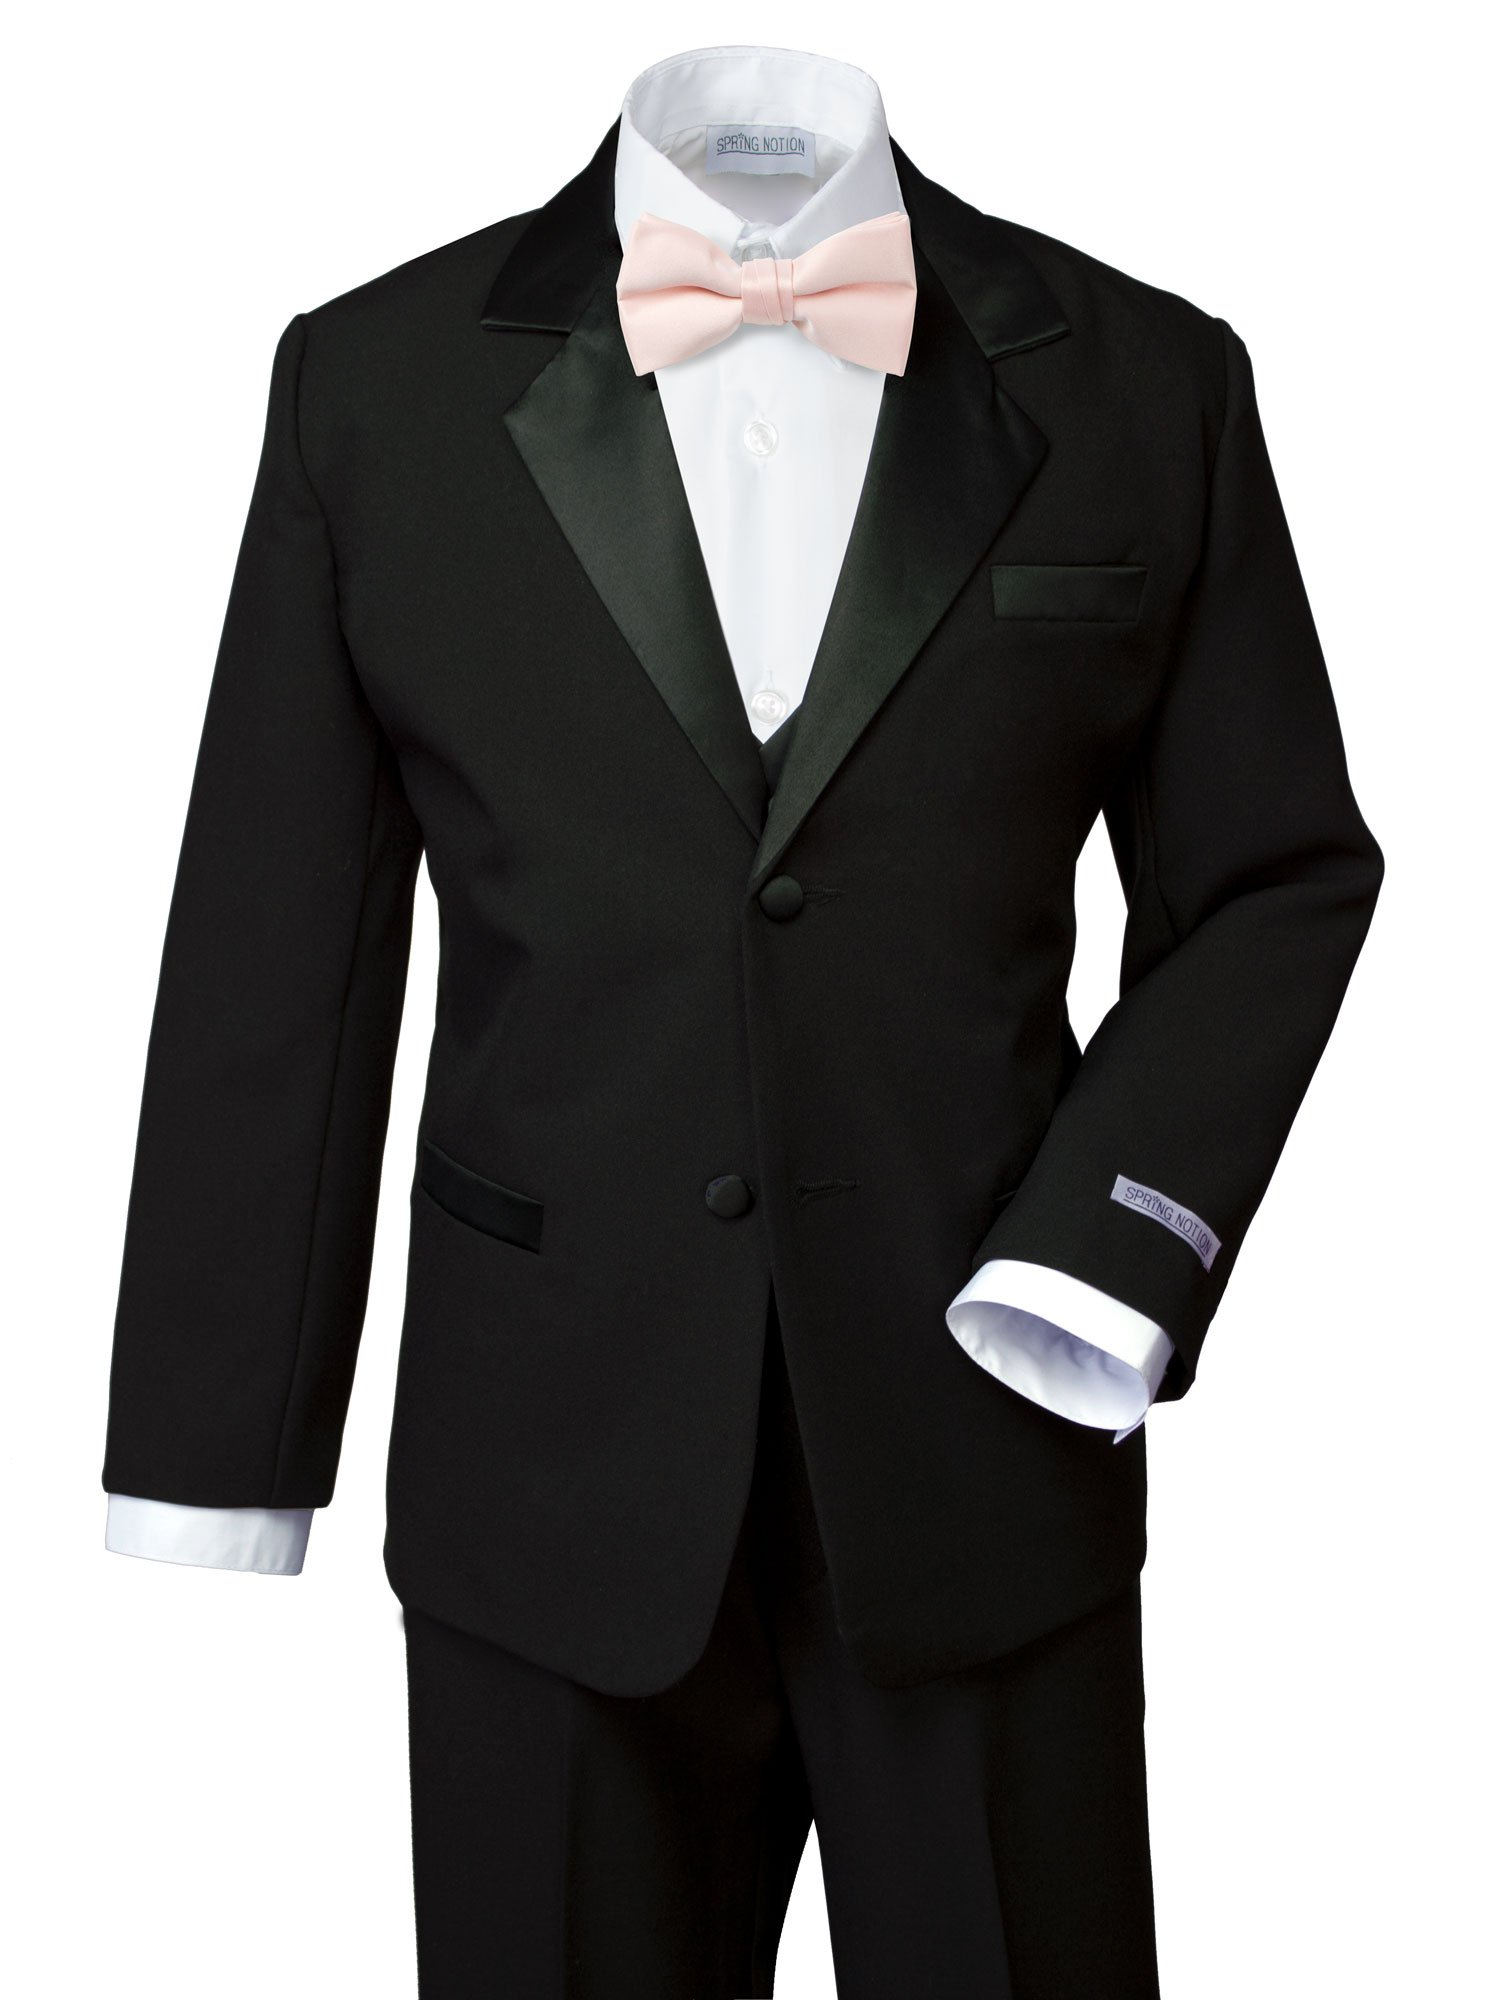 Spring Notion Boys' Classic Fit Tuxedo Set, No Tail 10 Black-Blush Pink